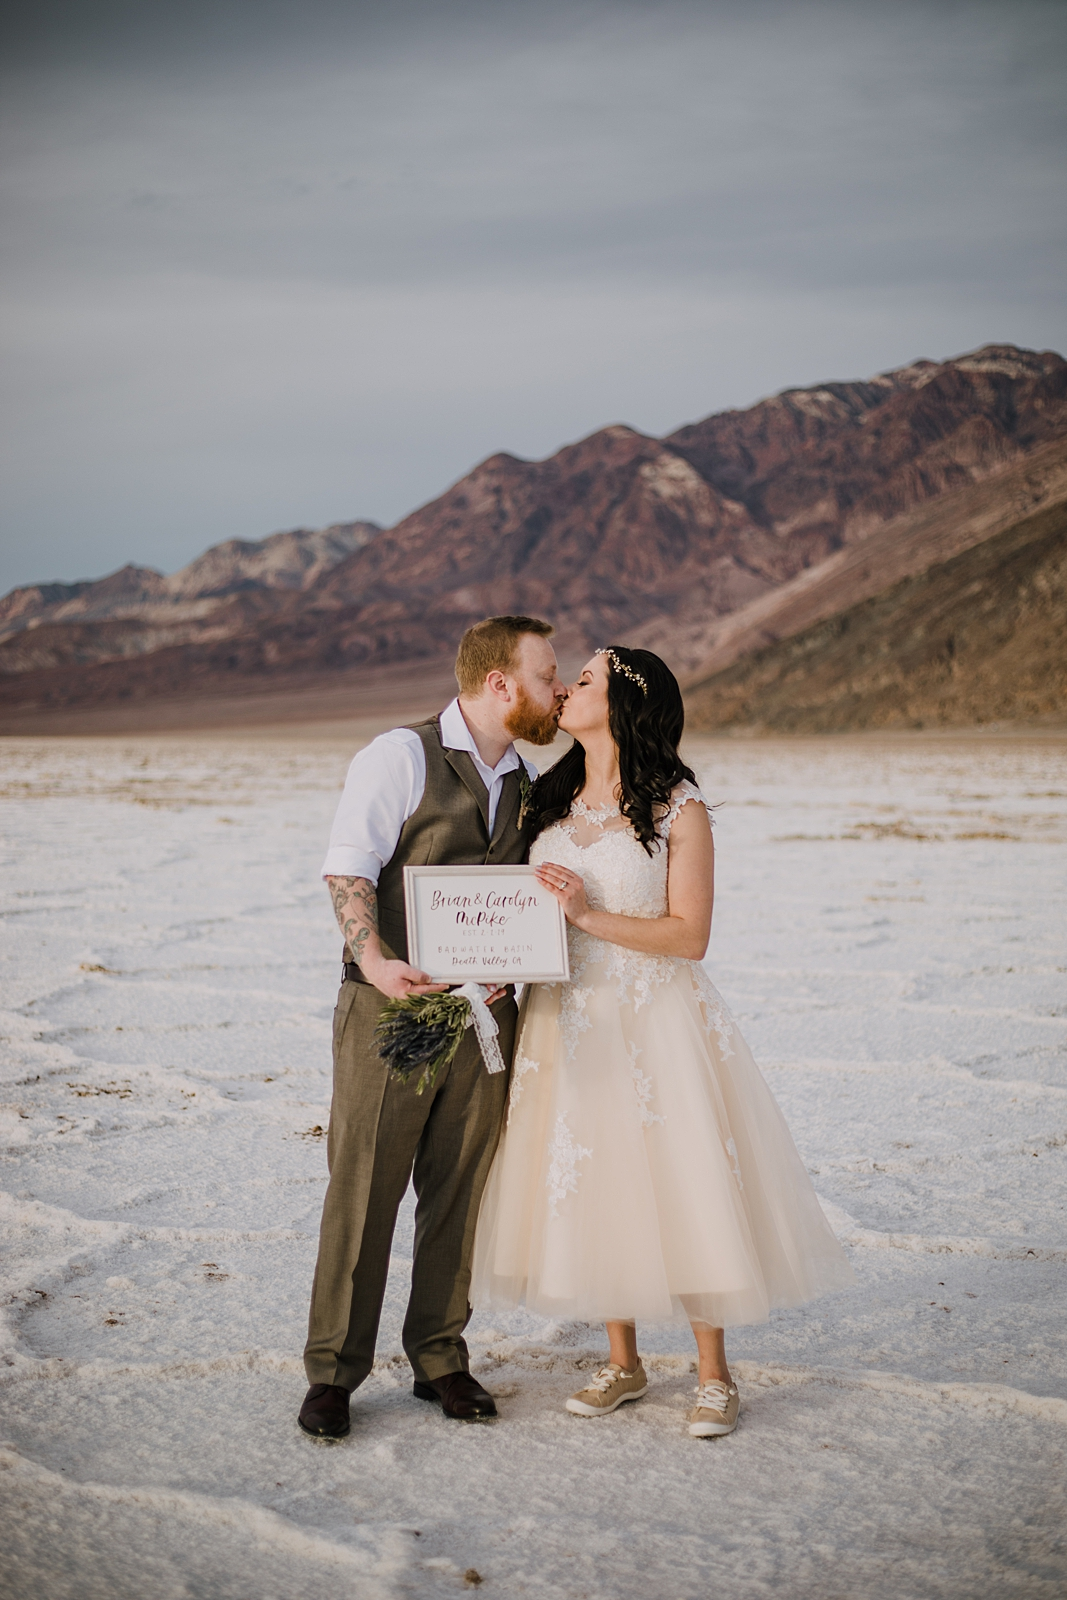 handmade elopement sign, death valley national park elopement, elope in death valley, badwater basin elopement, hiking in death valley national park, sunset at badwater basin